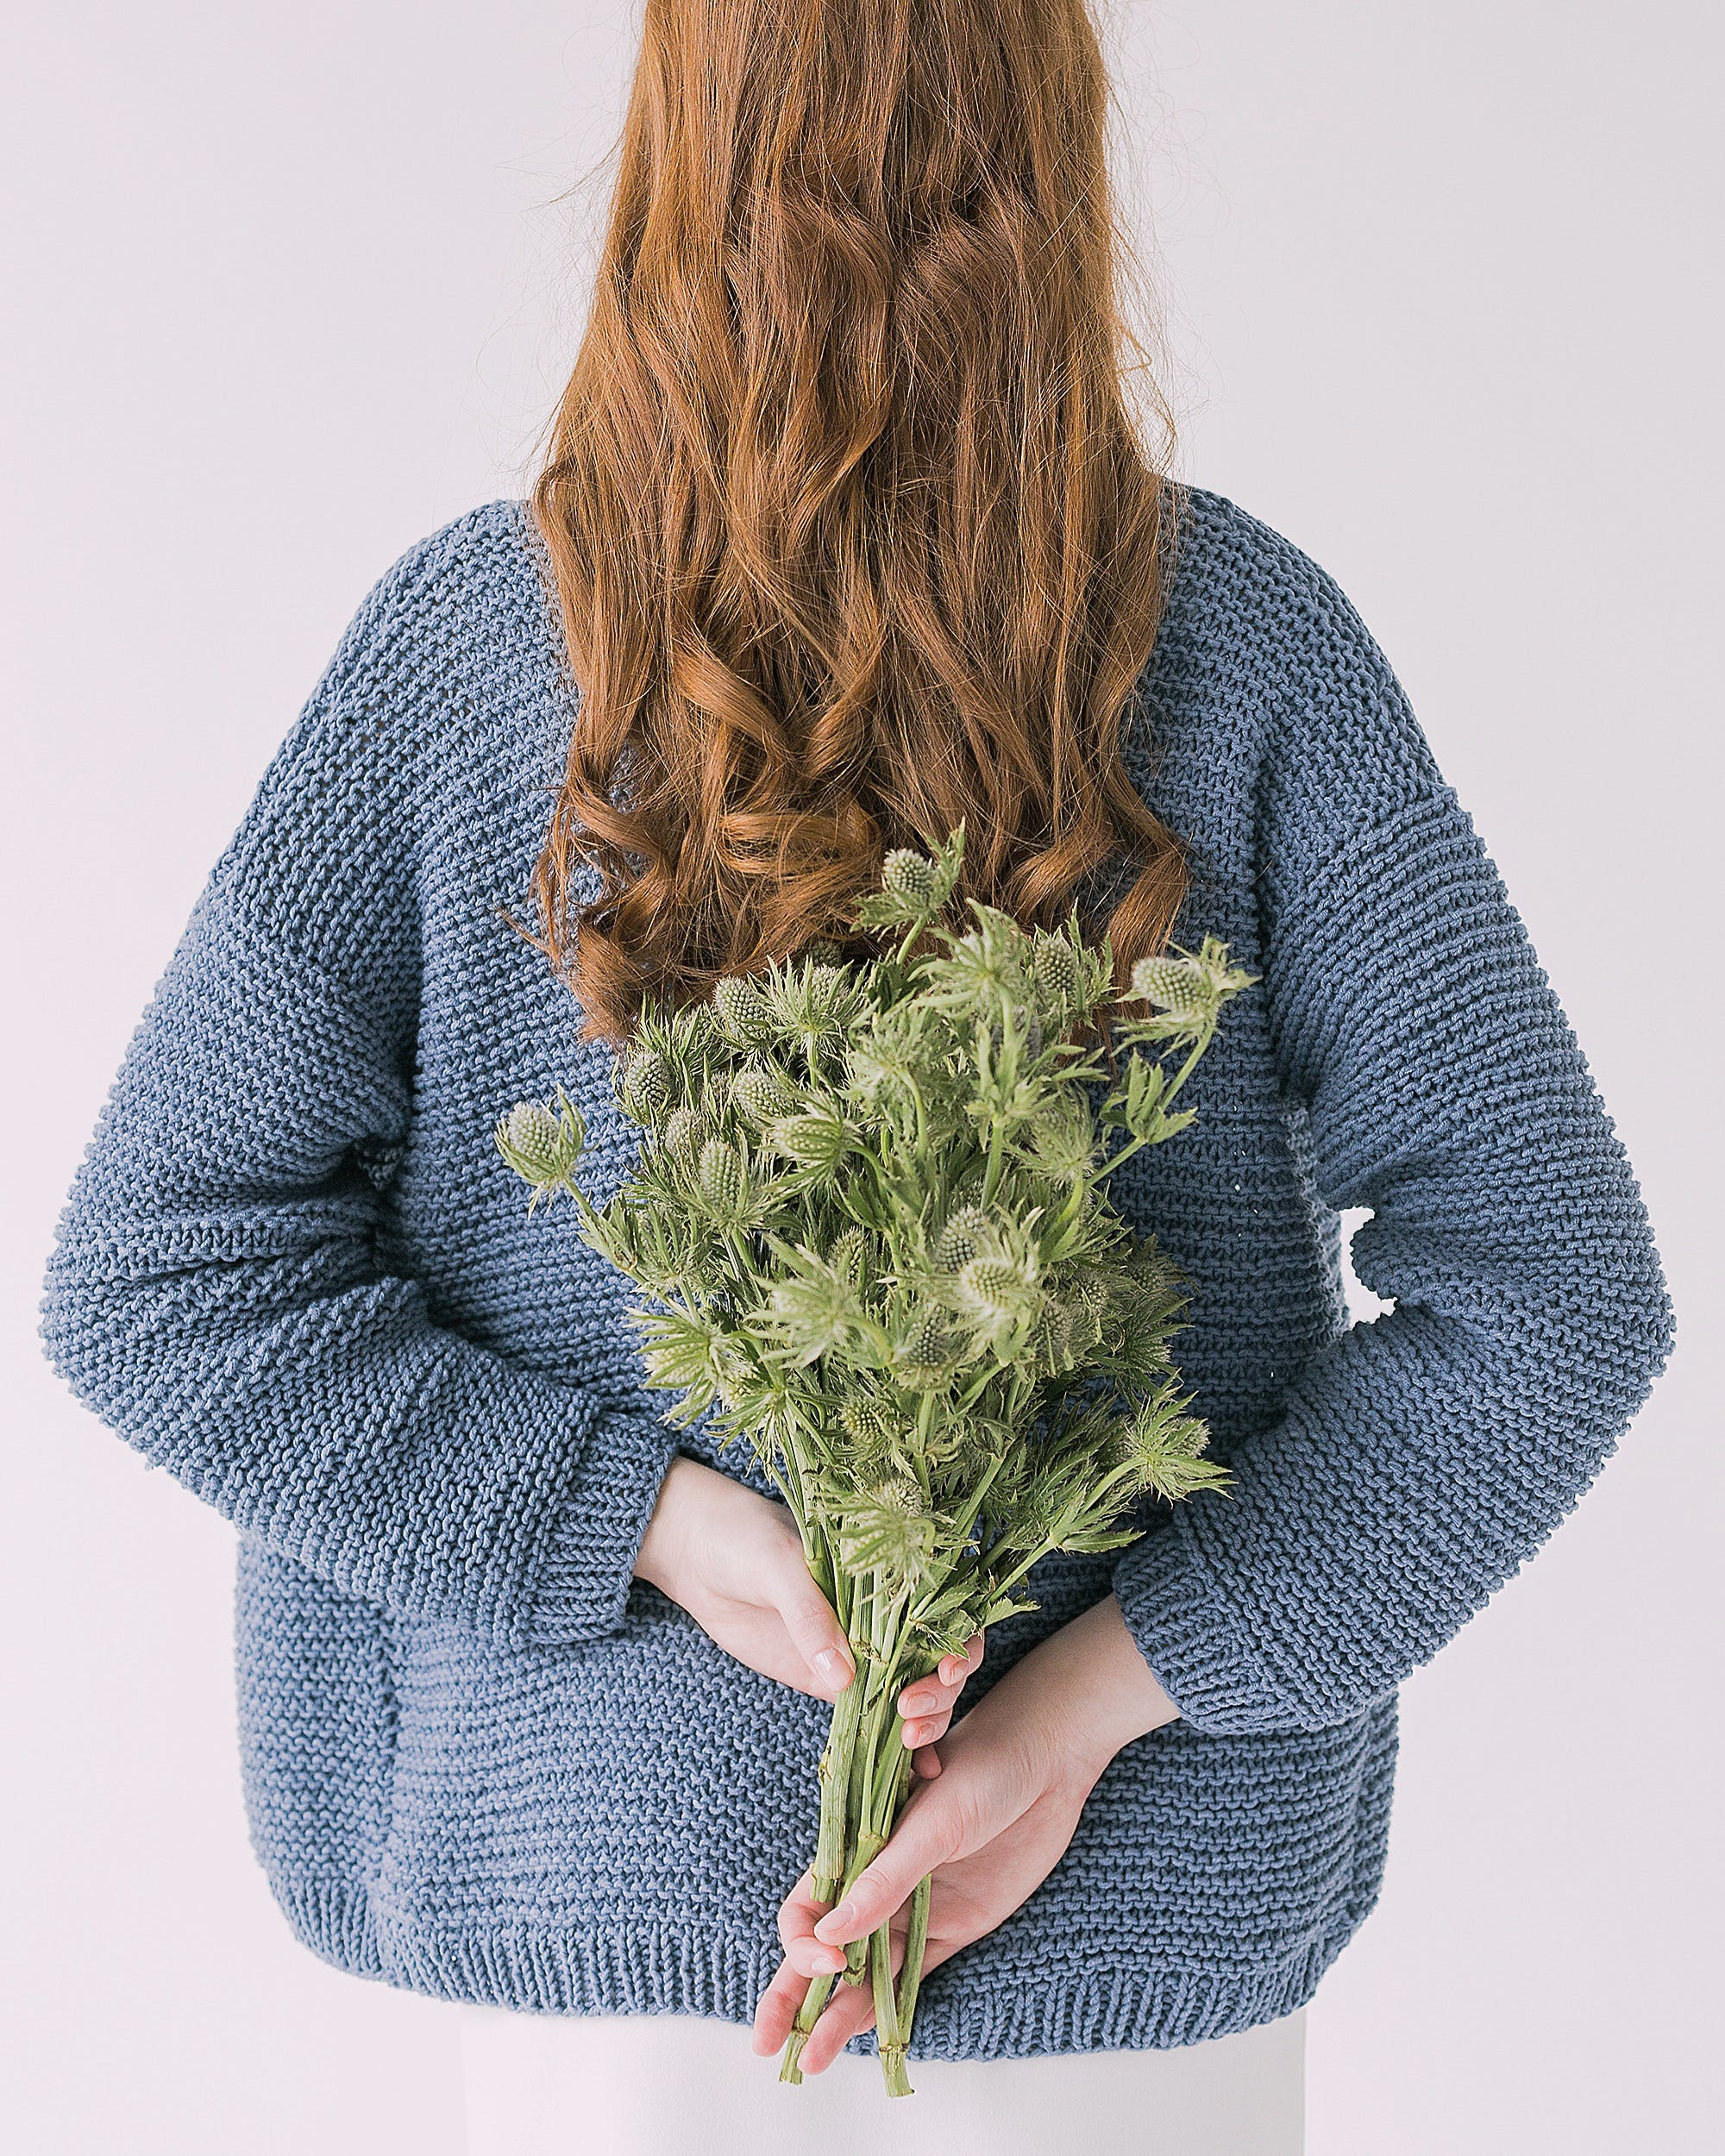 Woman in Gray Sweater Holding Green Leaf Plants